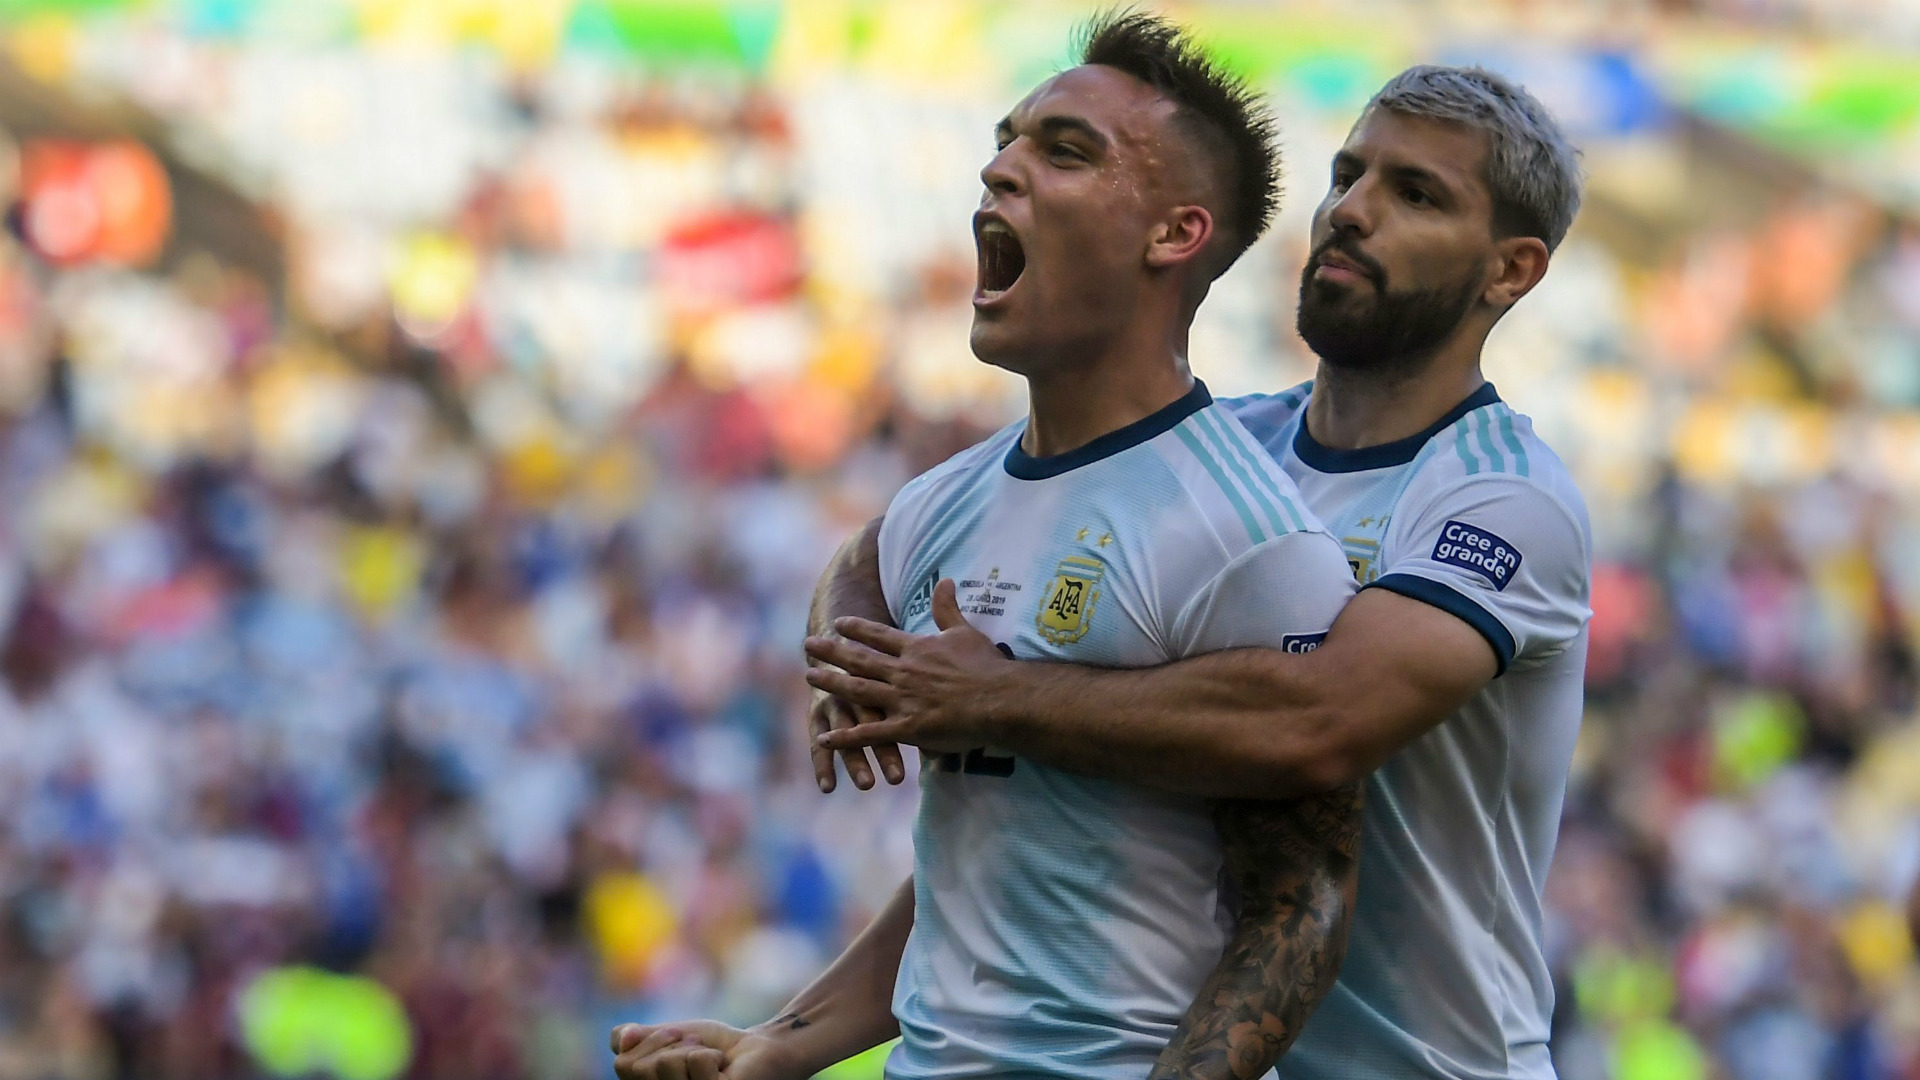 Forget Messi, here's Martinez! Inter star is Argentina's new hero ...